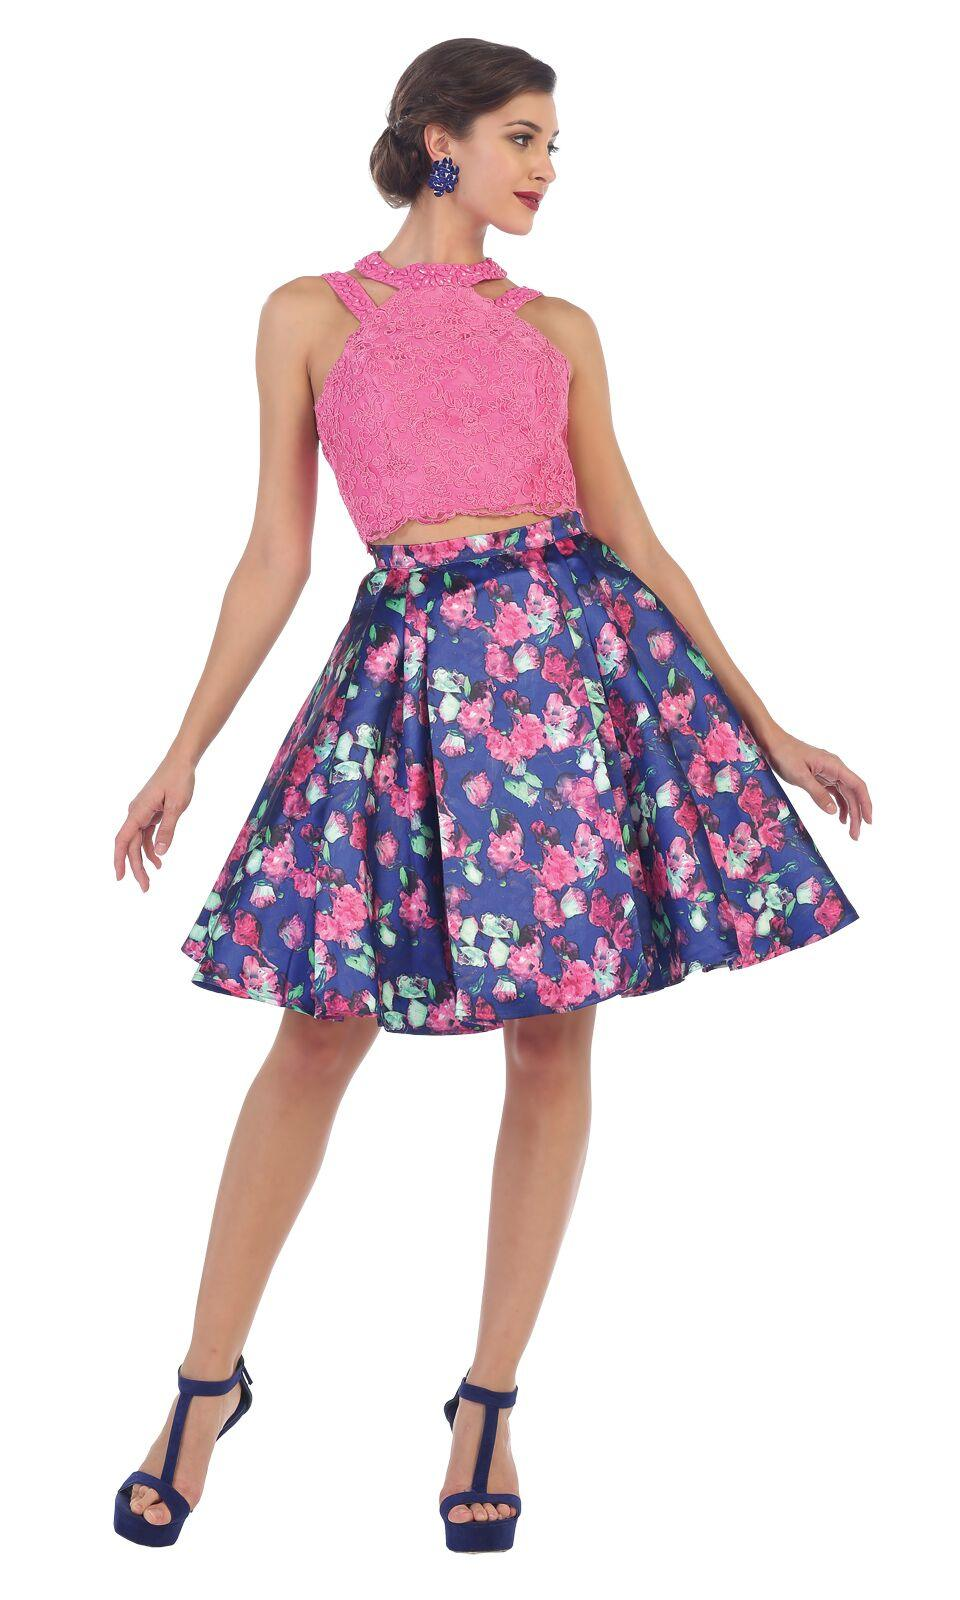 3d09f0d9fd3 ... May Queen  Short Two Piece Set Floral Print Prom Dress - The Dress  Outlet Hot Pink Multi ...